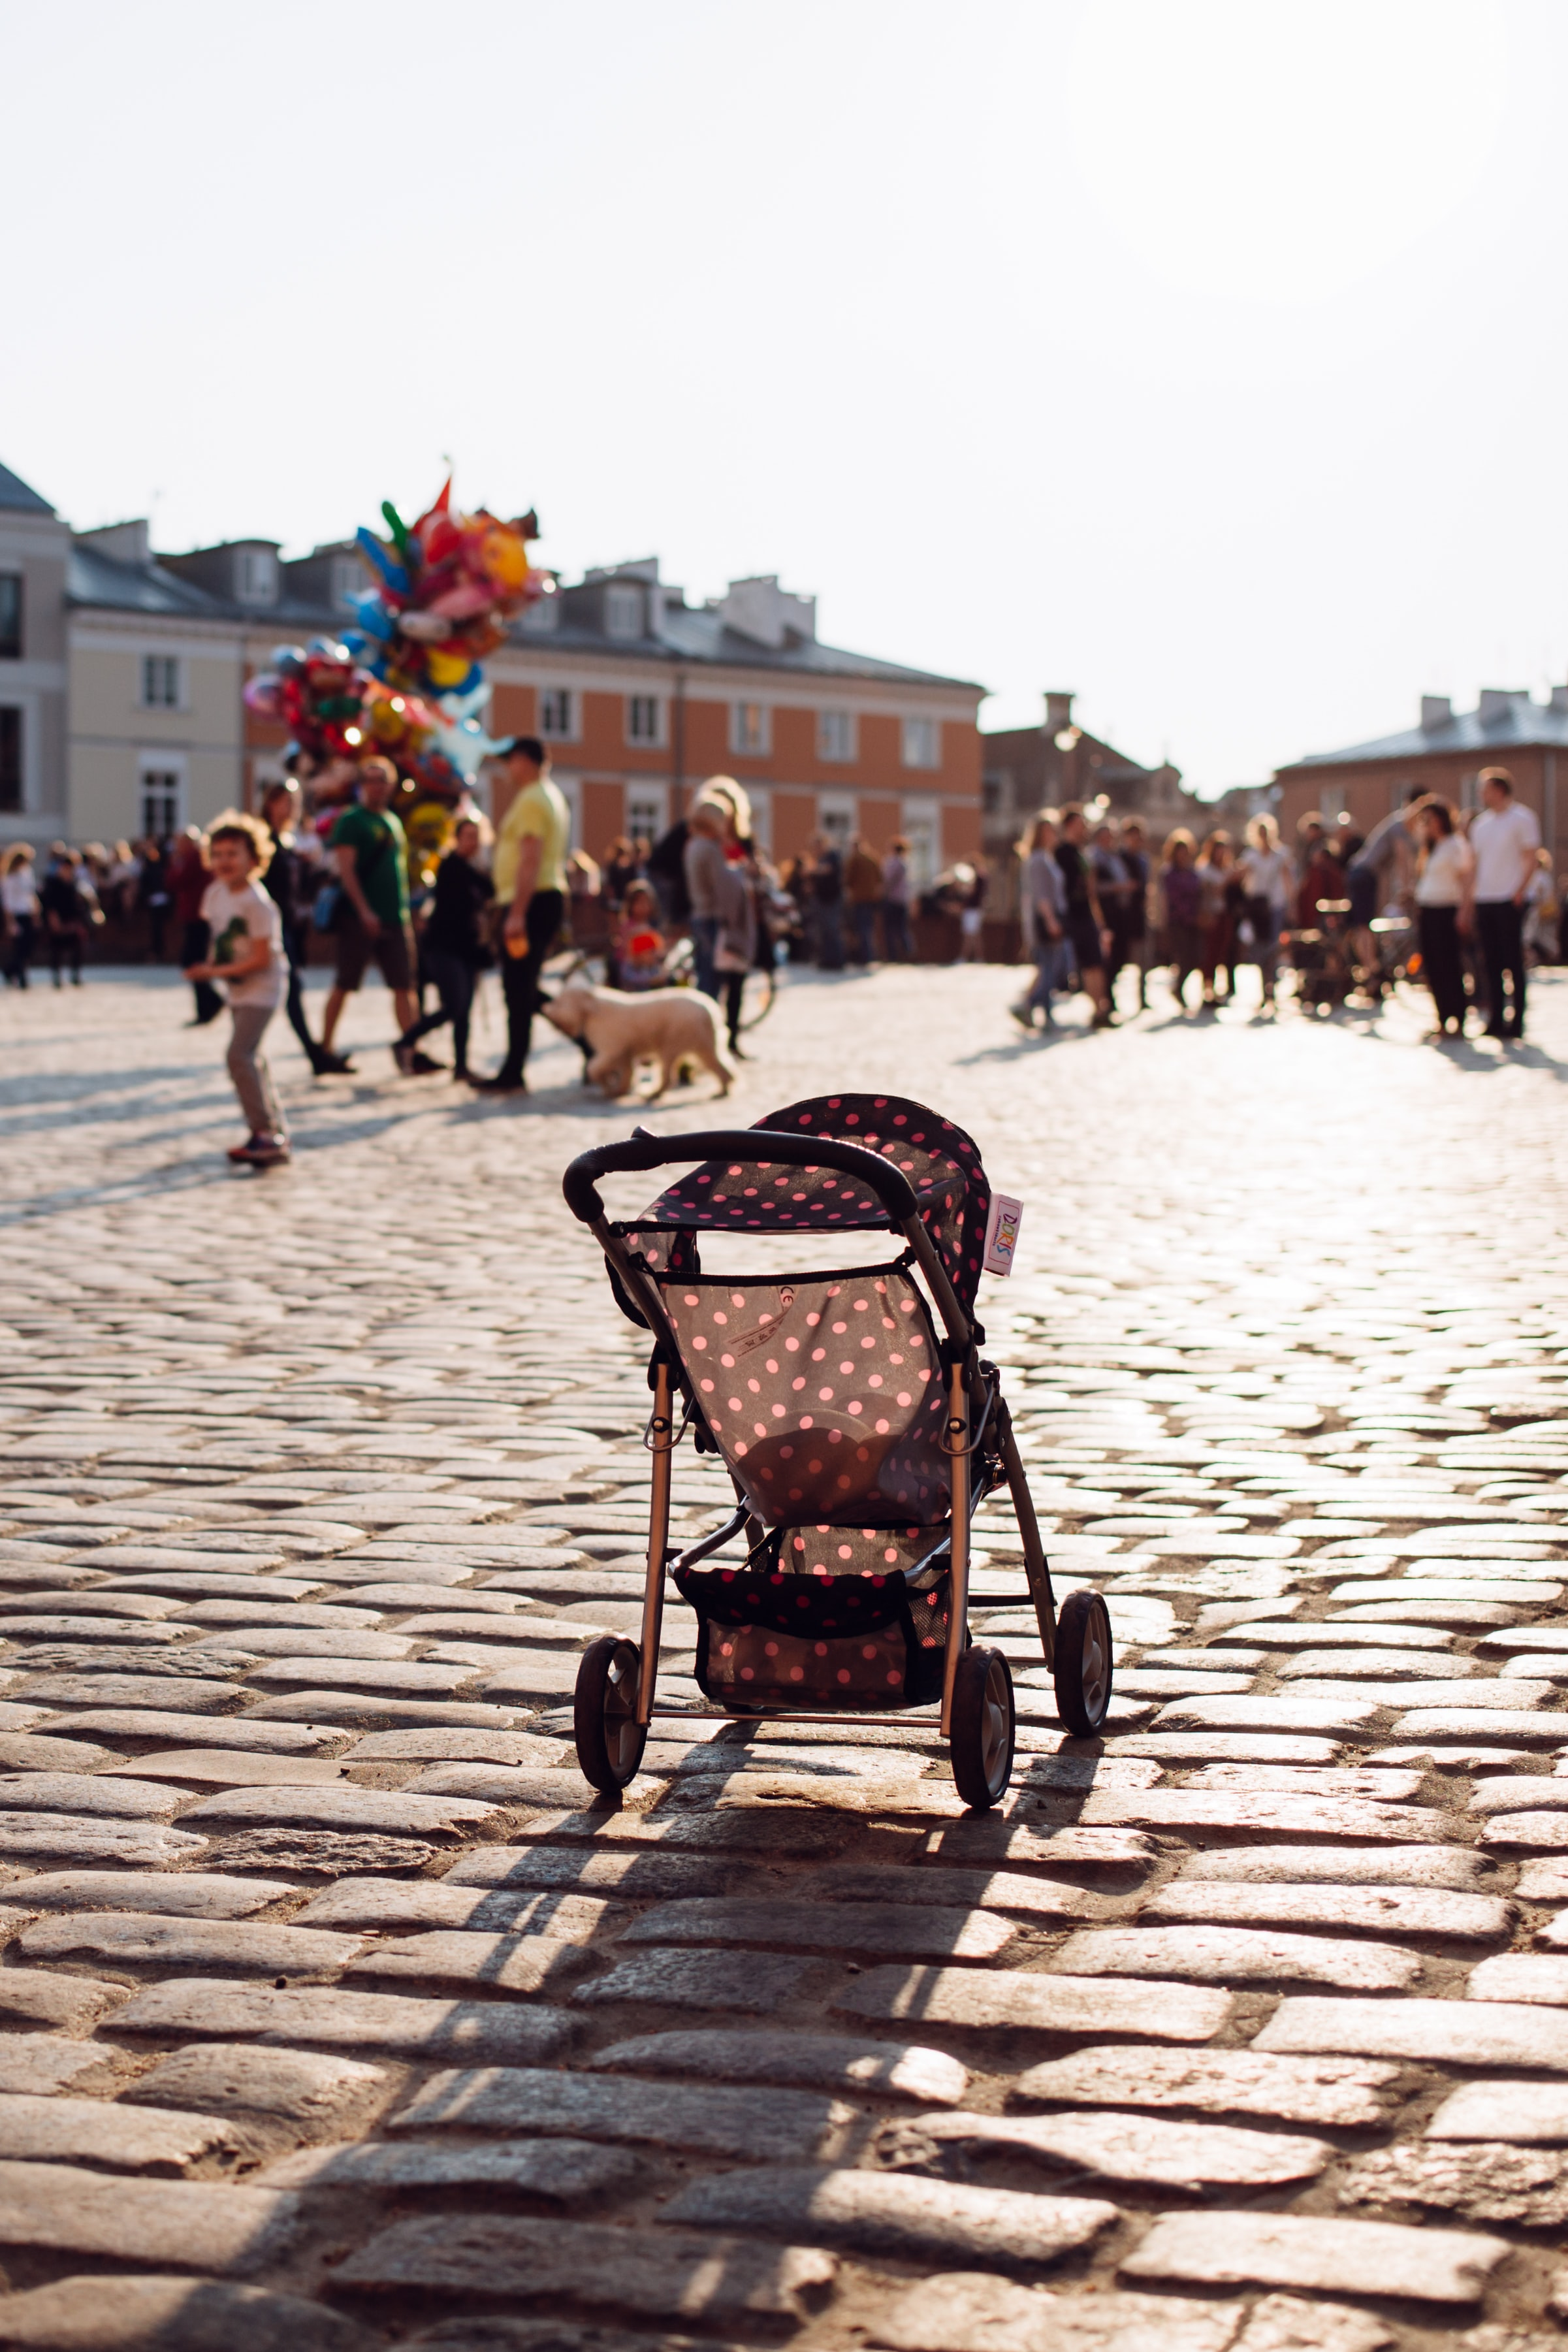 gray and white polka-dot stroller in the middle of street